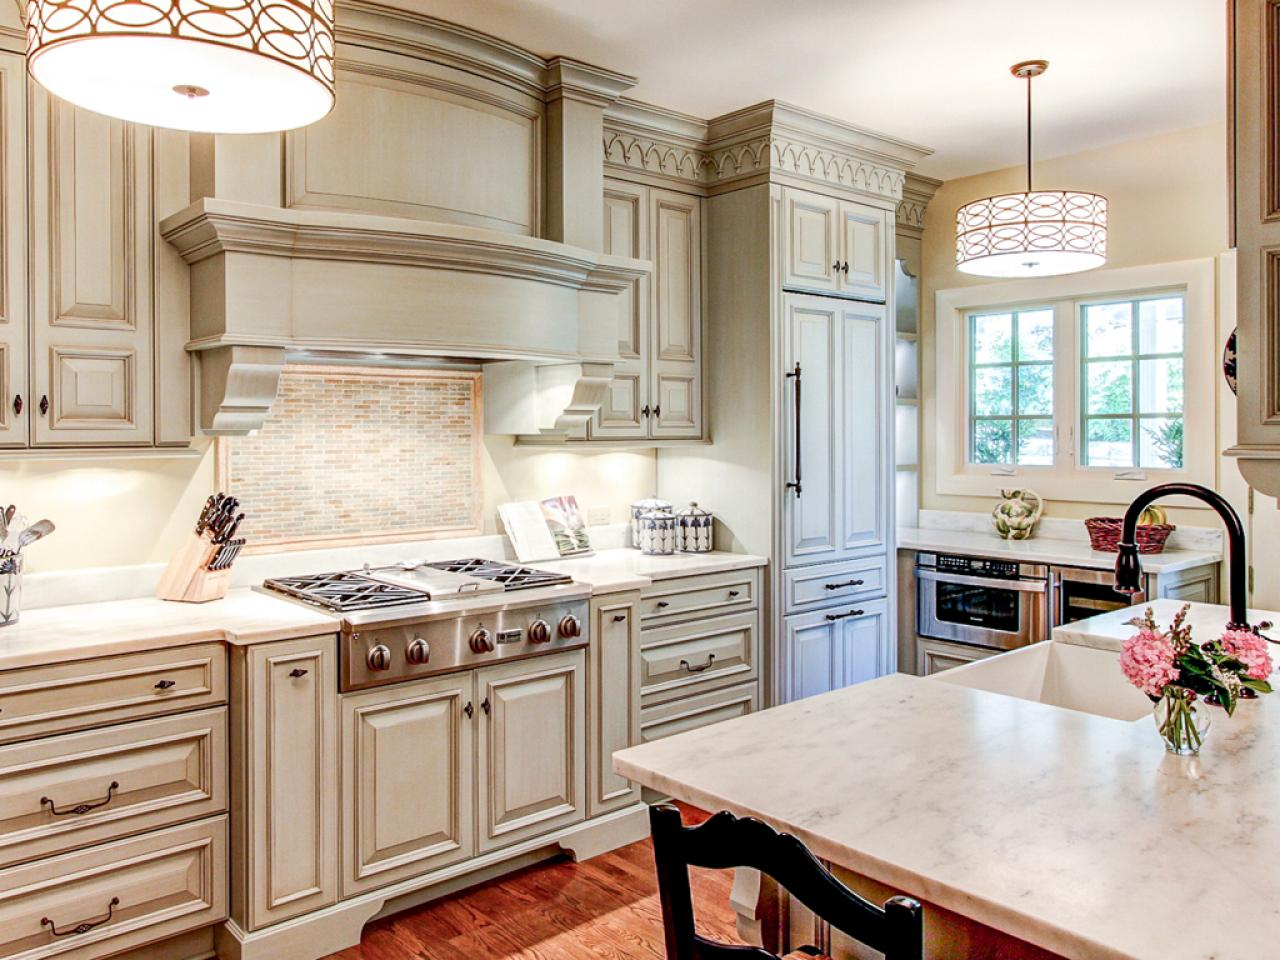 painting kitchen cabinets best way to paint kitchen cabinets: hgtv pictures u0026 ideas | hgtv MITOYDK